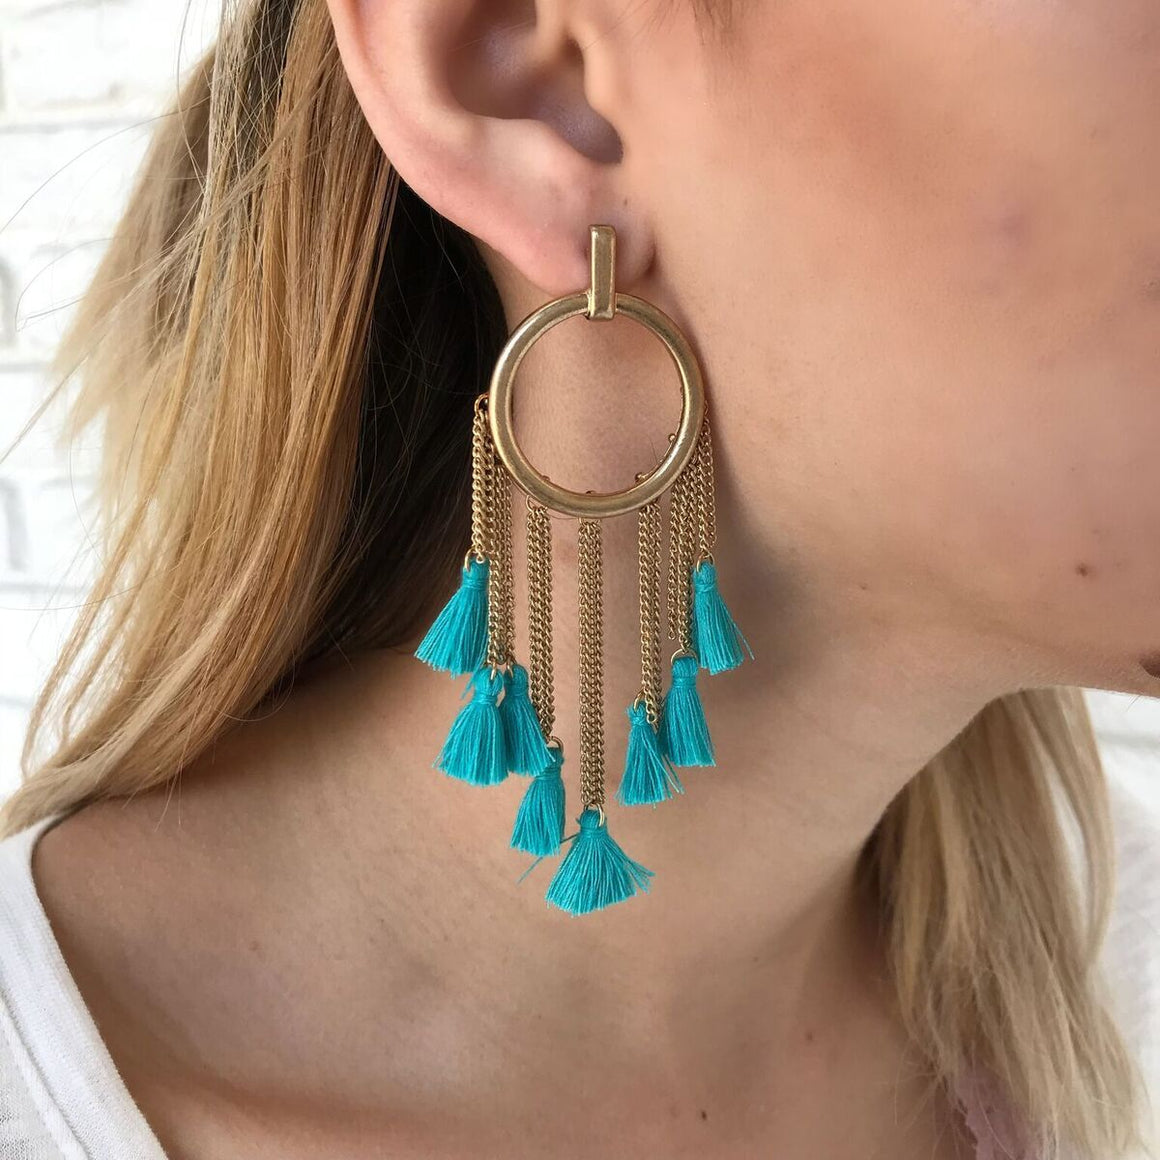 Gold Coast Earrings in Teal - Dainty Hooligan